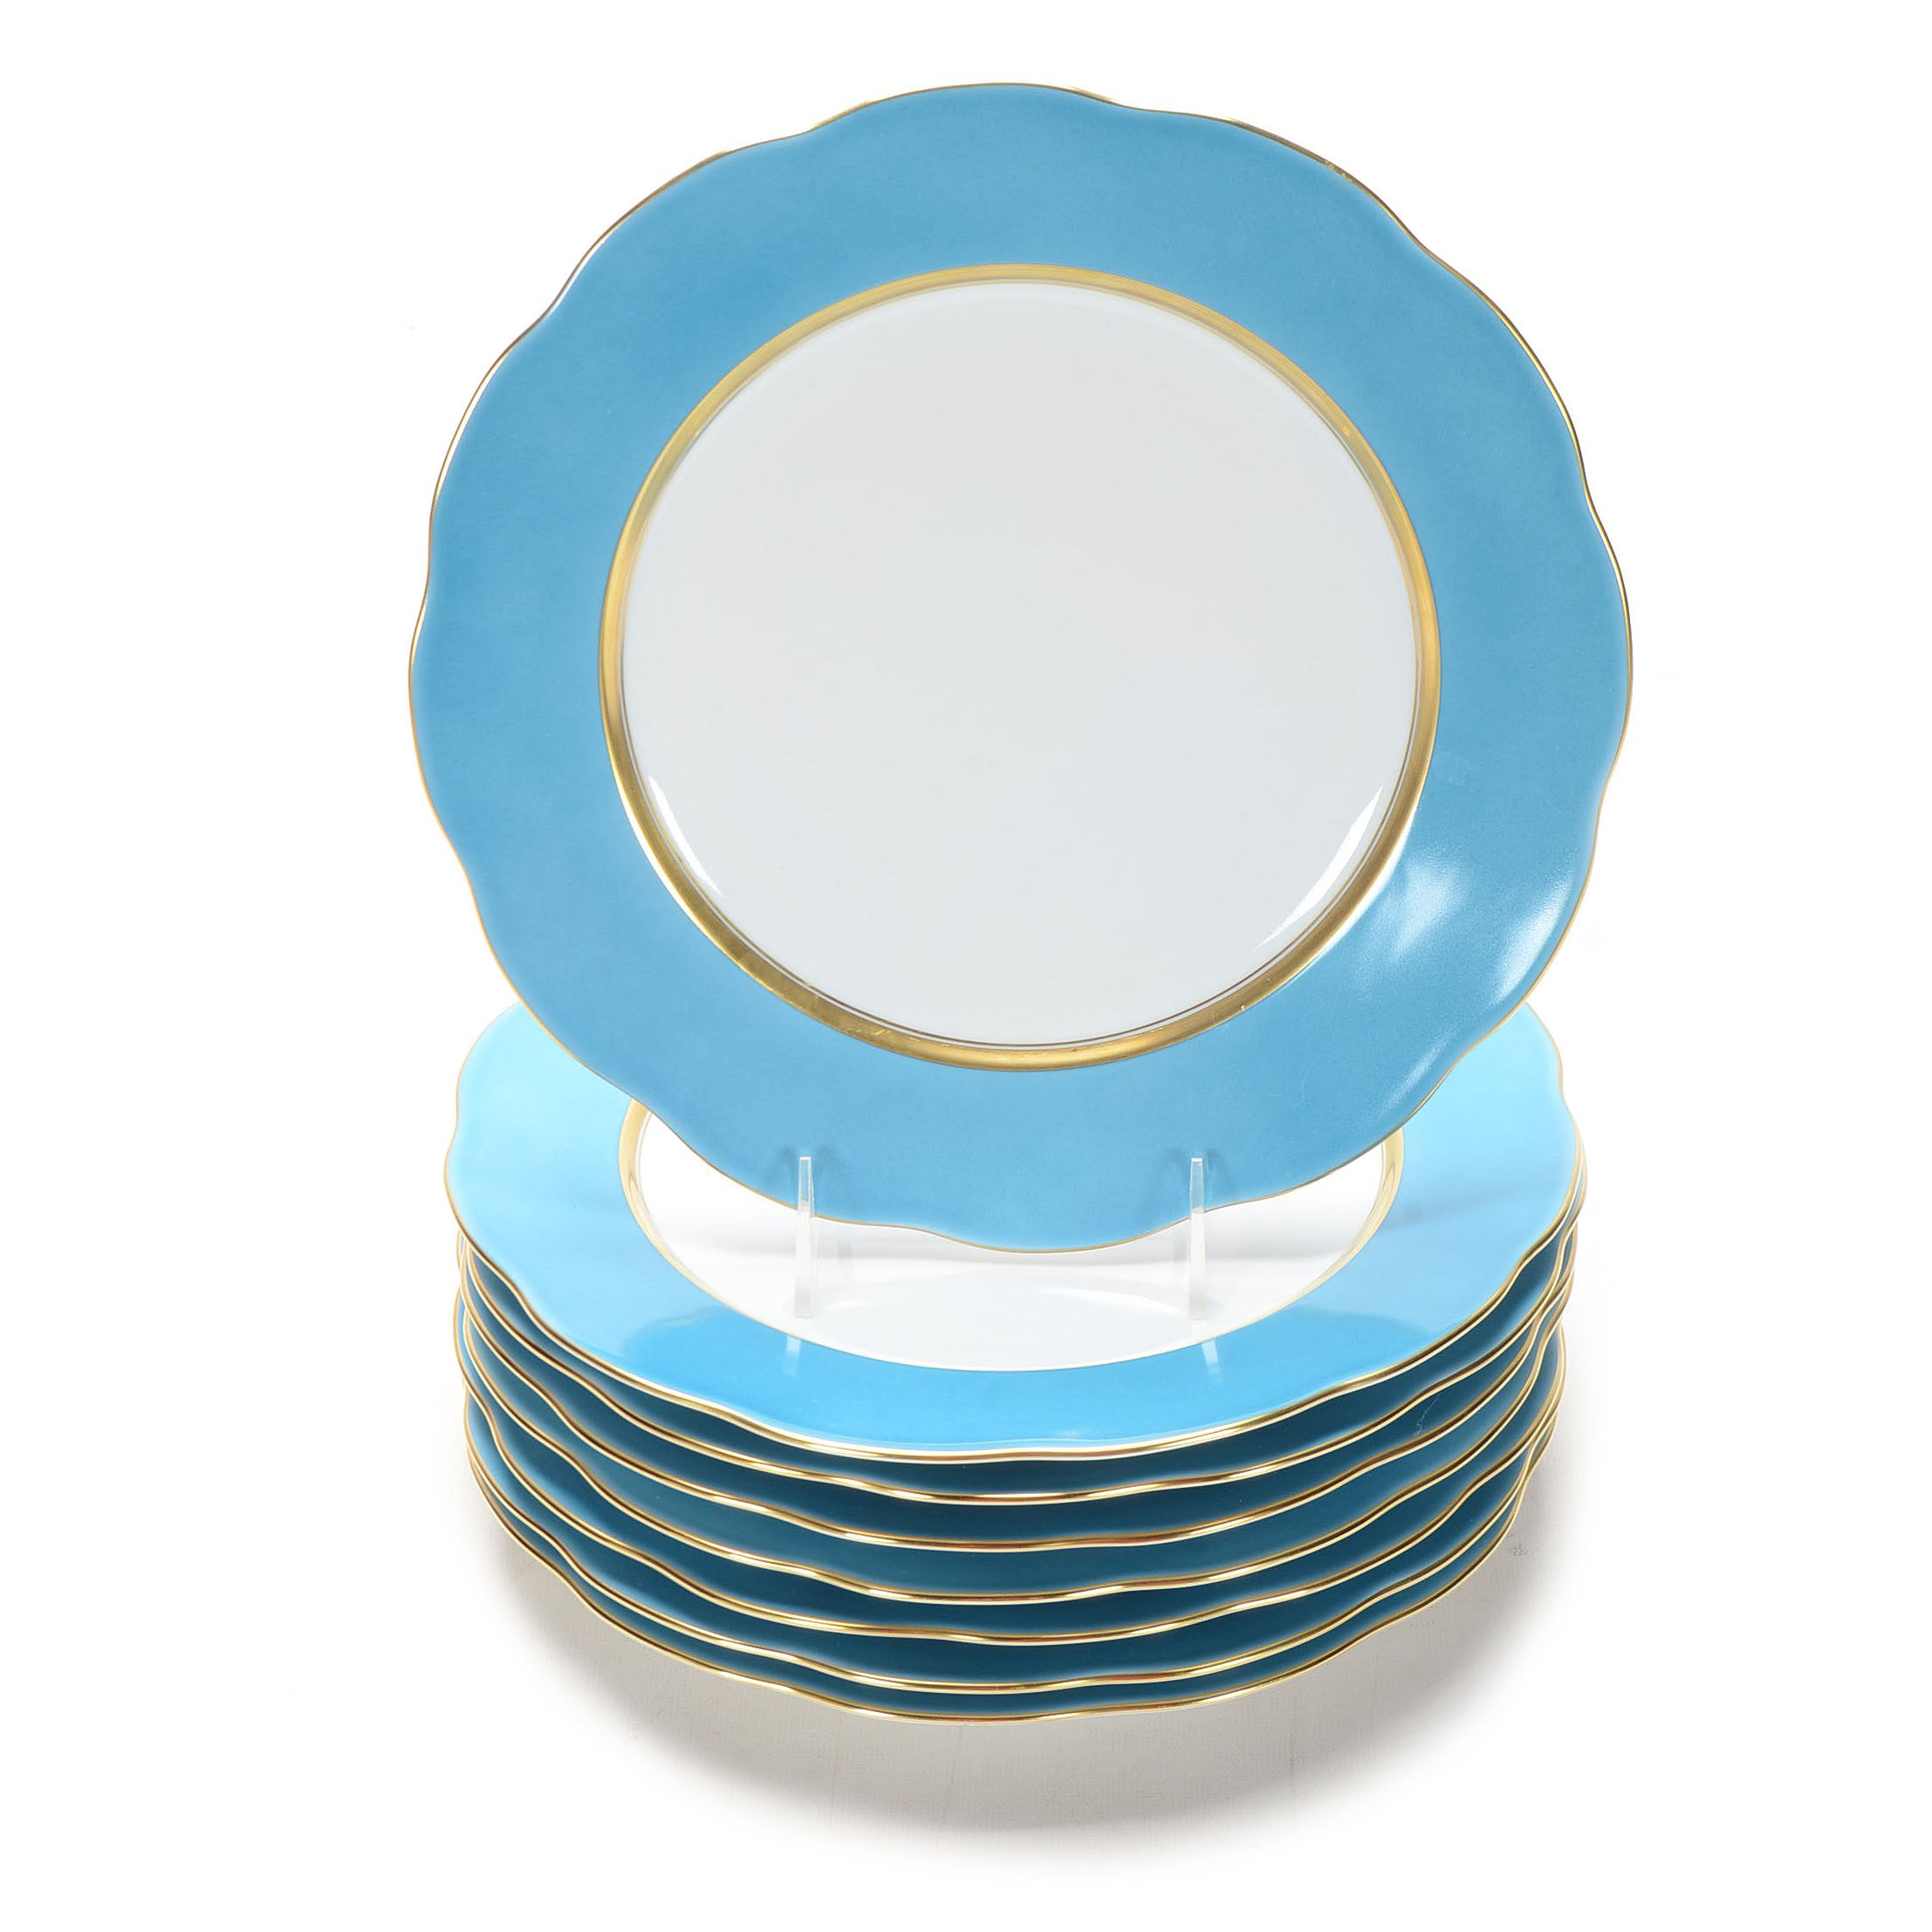 Herend Hungary  Silk Ribbon  Turquoise Dinner Plates ...  sc 1 st  EBTH.com & Herend Hungary